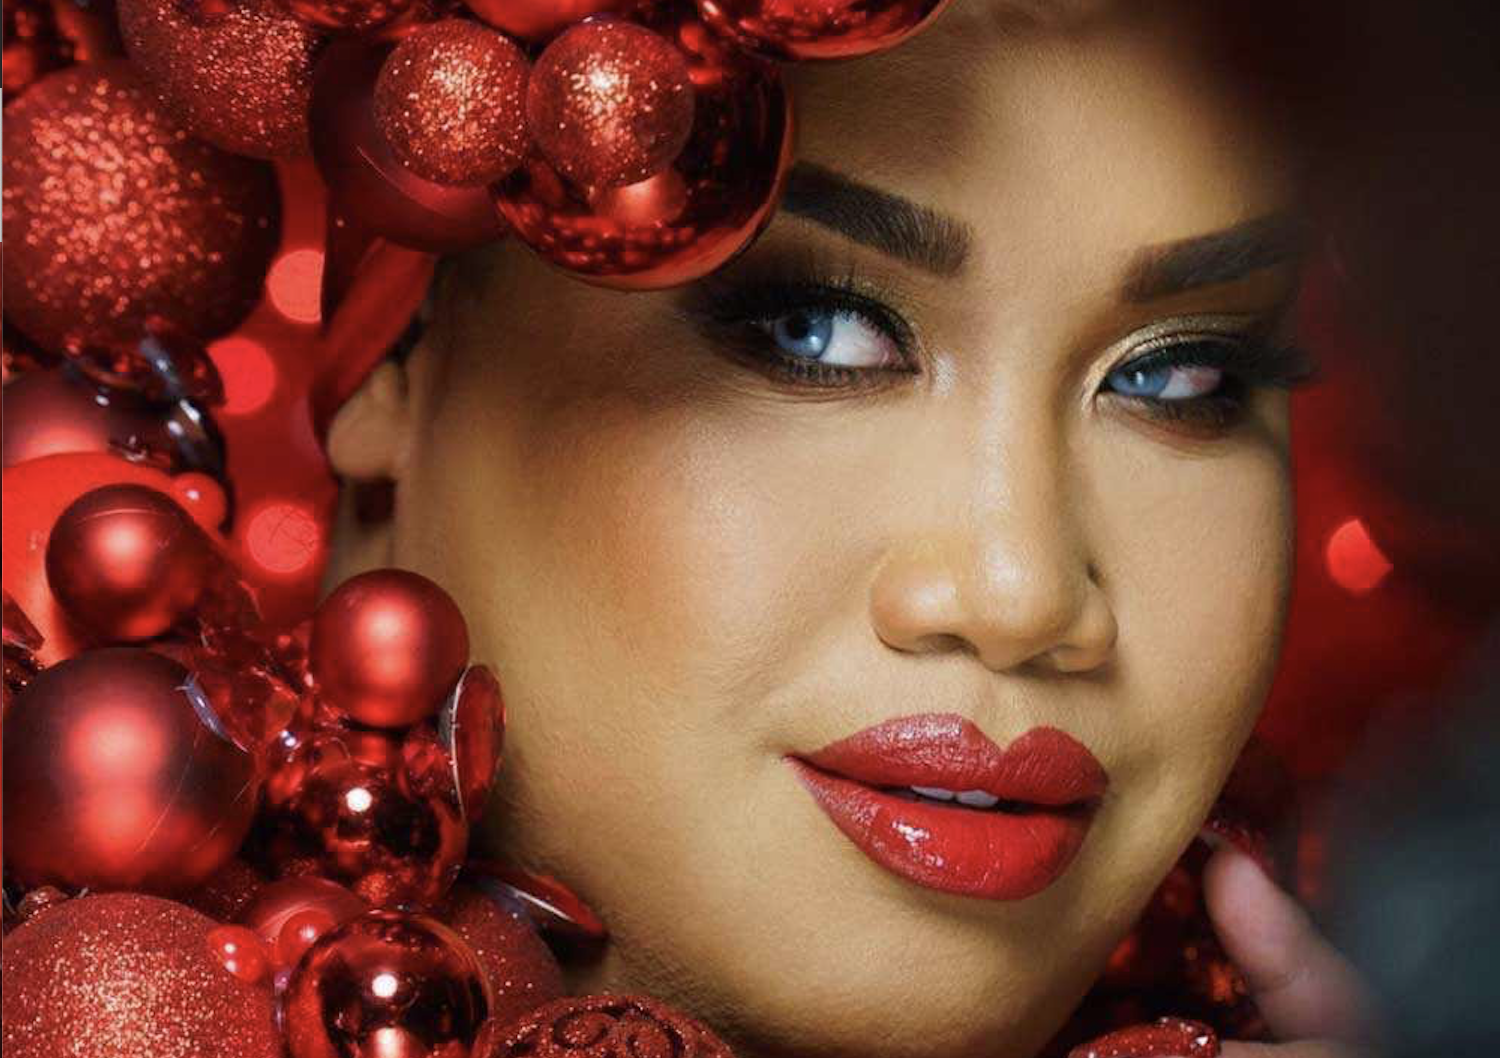 Westfield Christmas M·A·C x Patrick Starrr Collection